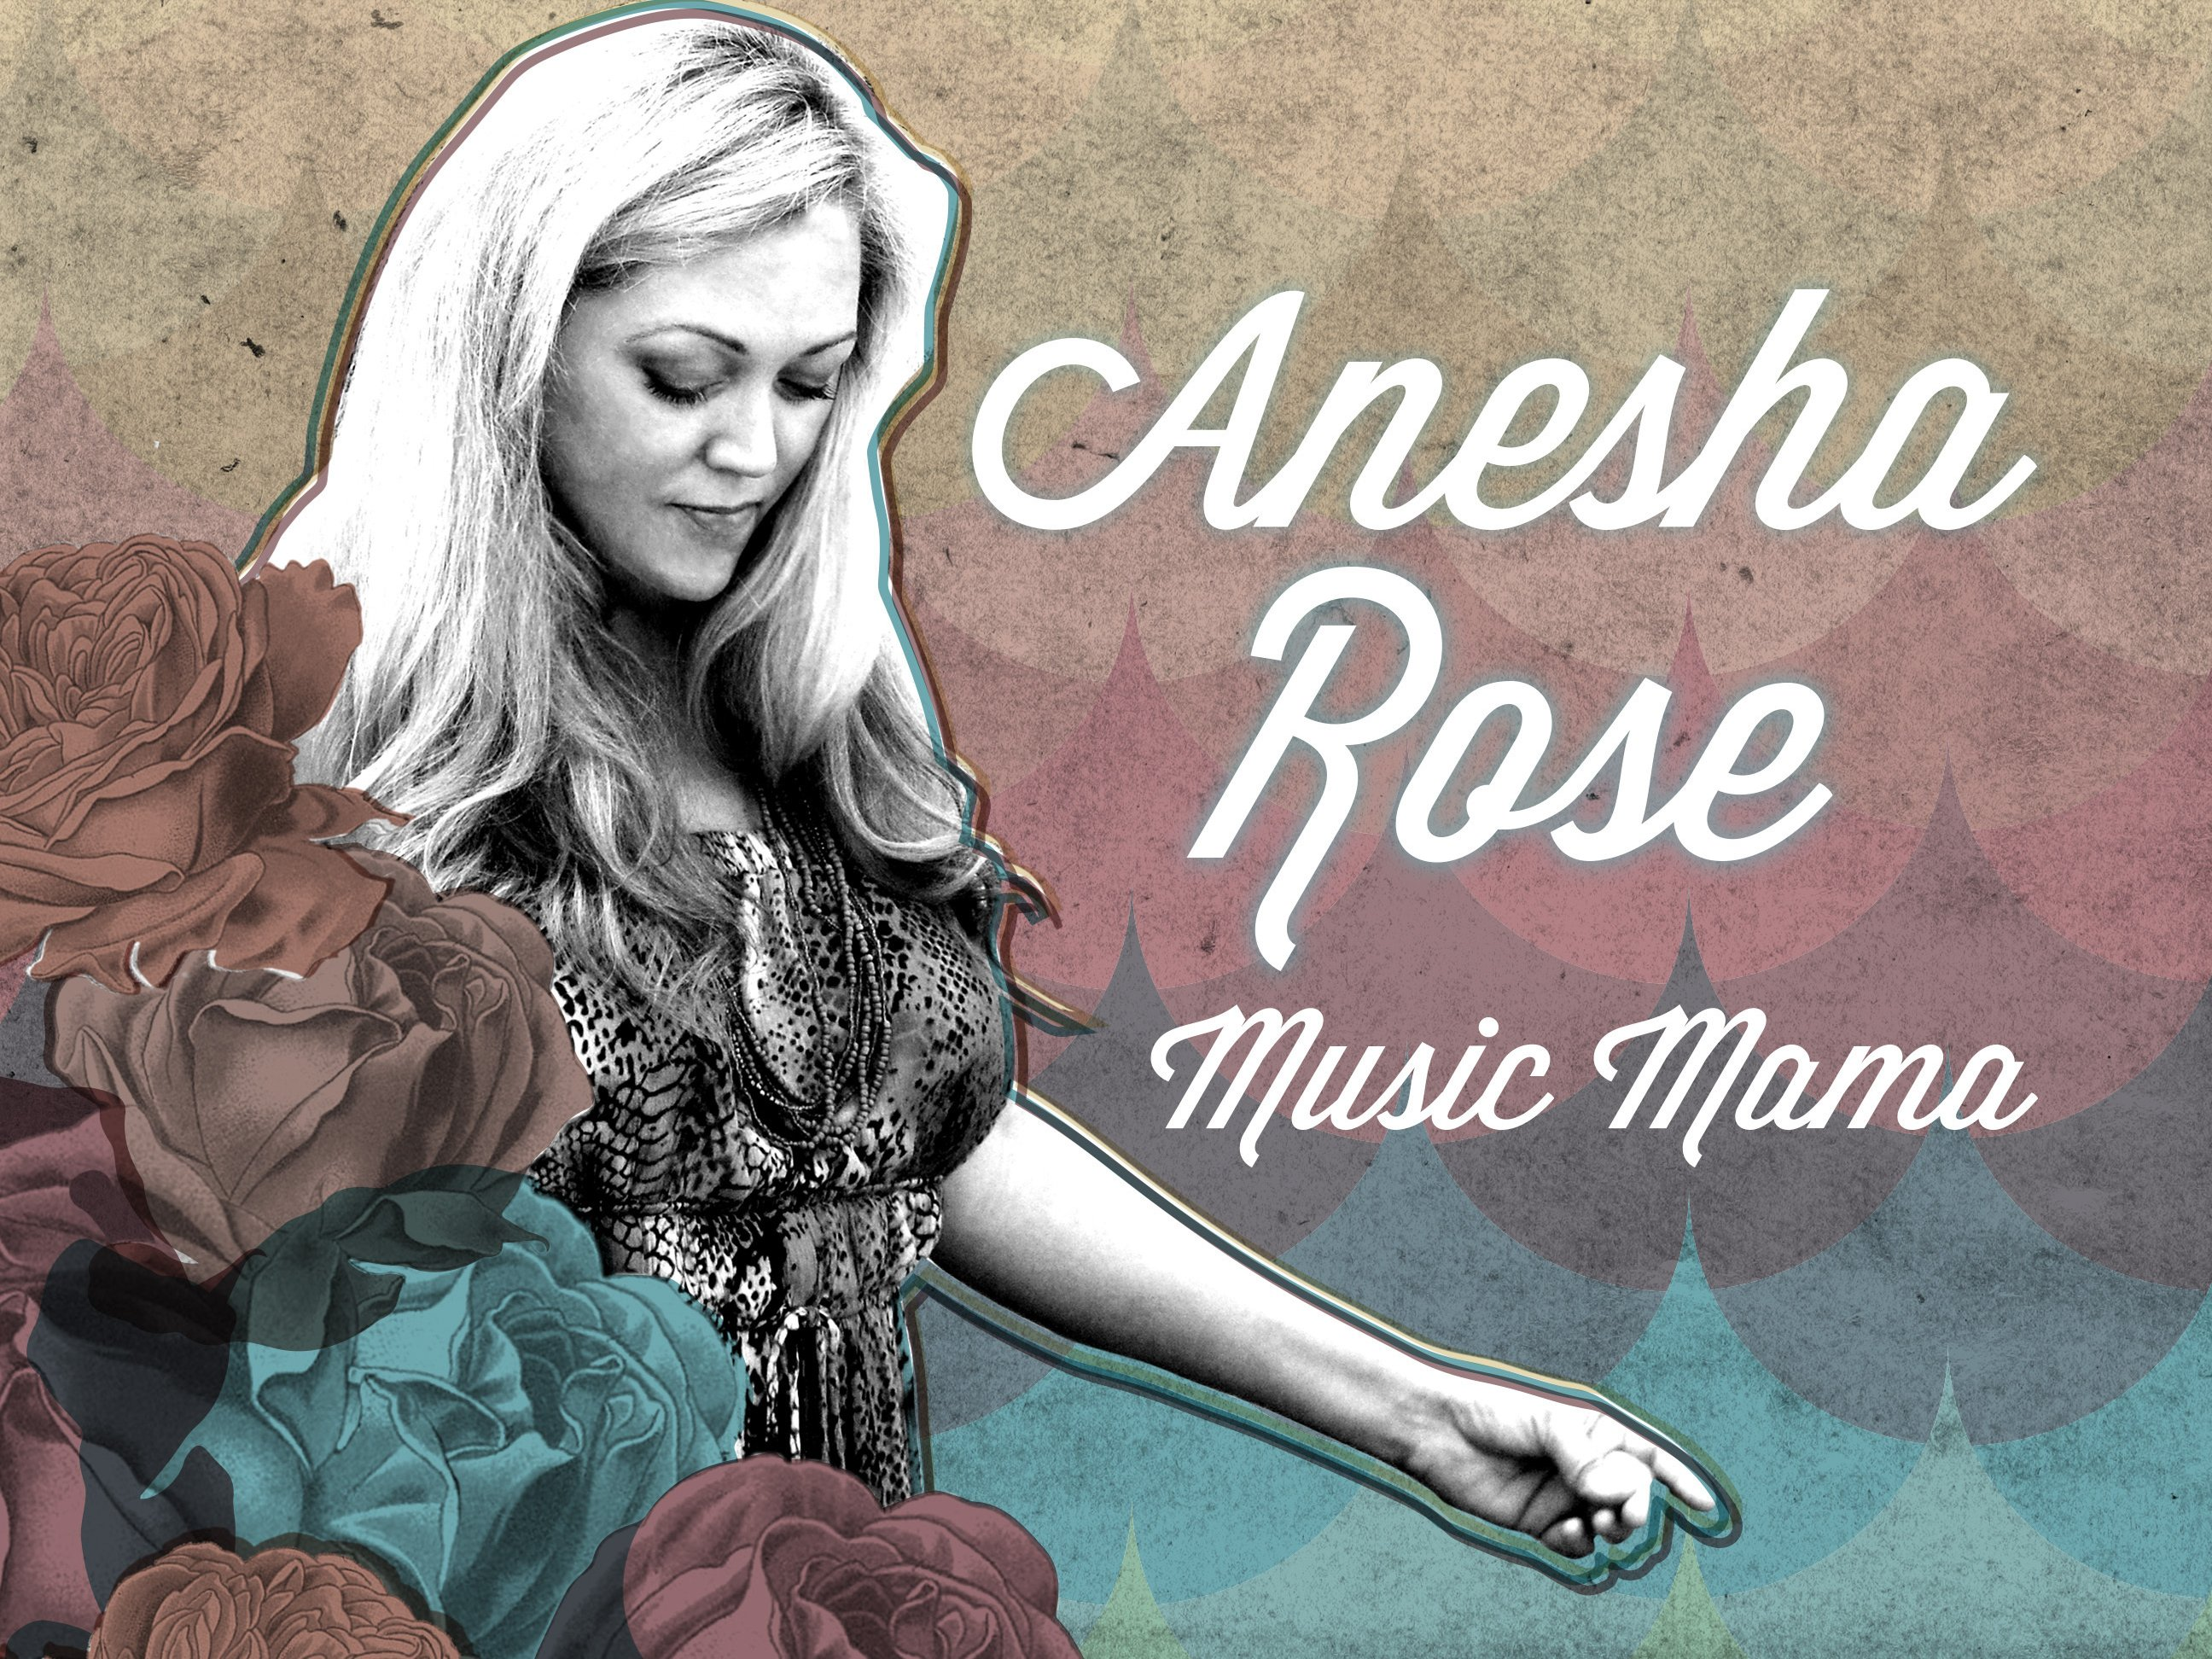 Image for Anesha Rose